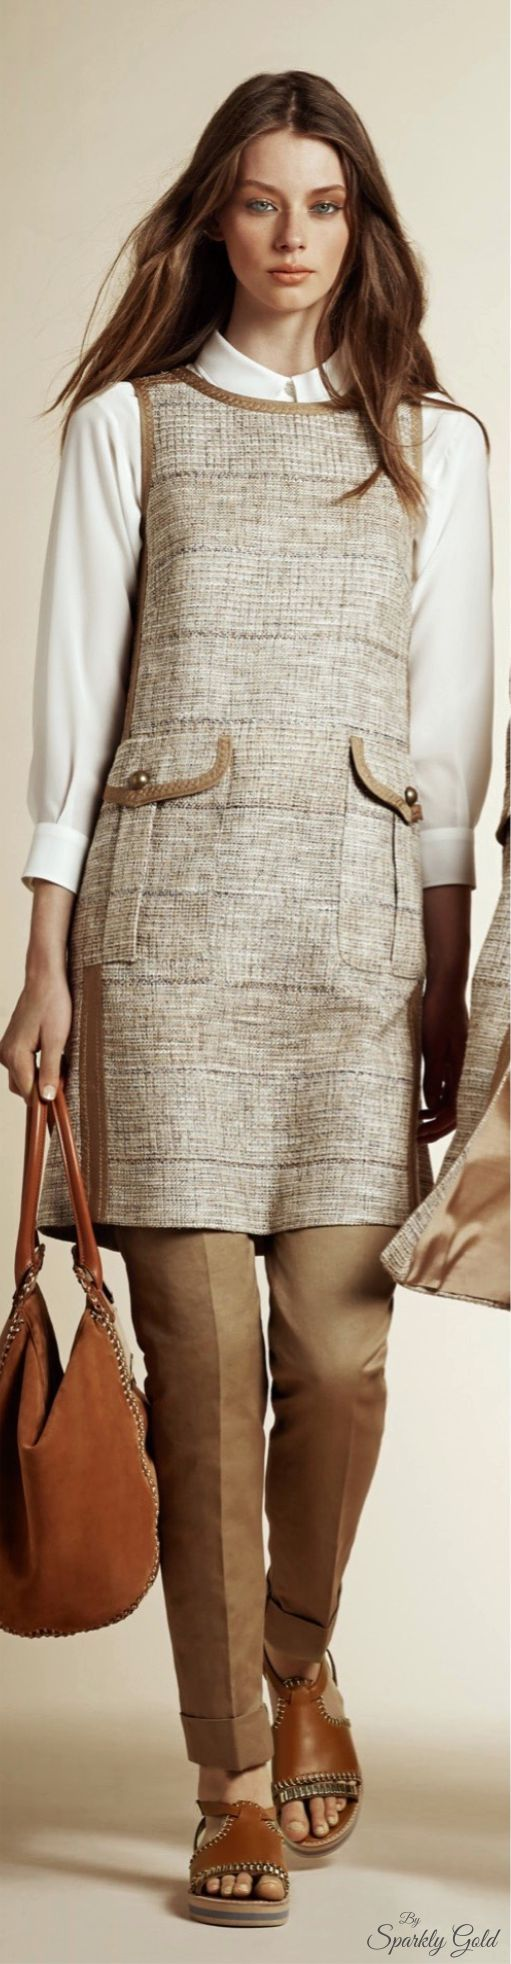 Alberta Ferretti Resort 2016 women fashion outfit clothing style apparel @roressclothes closet ideas